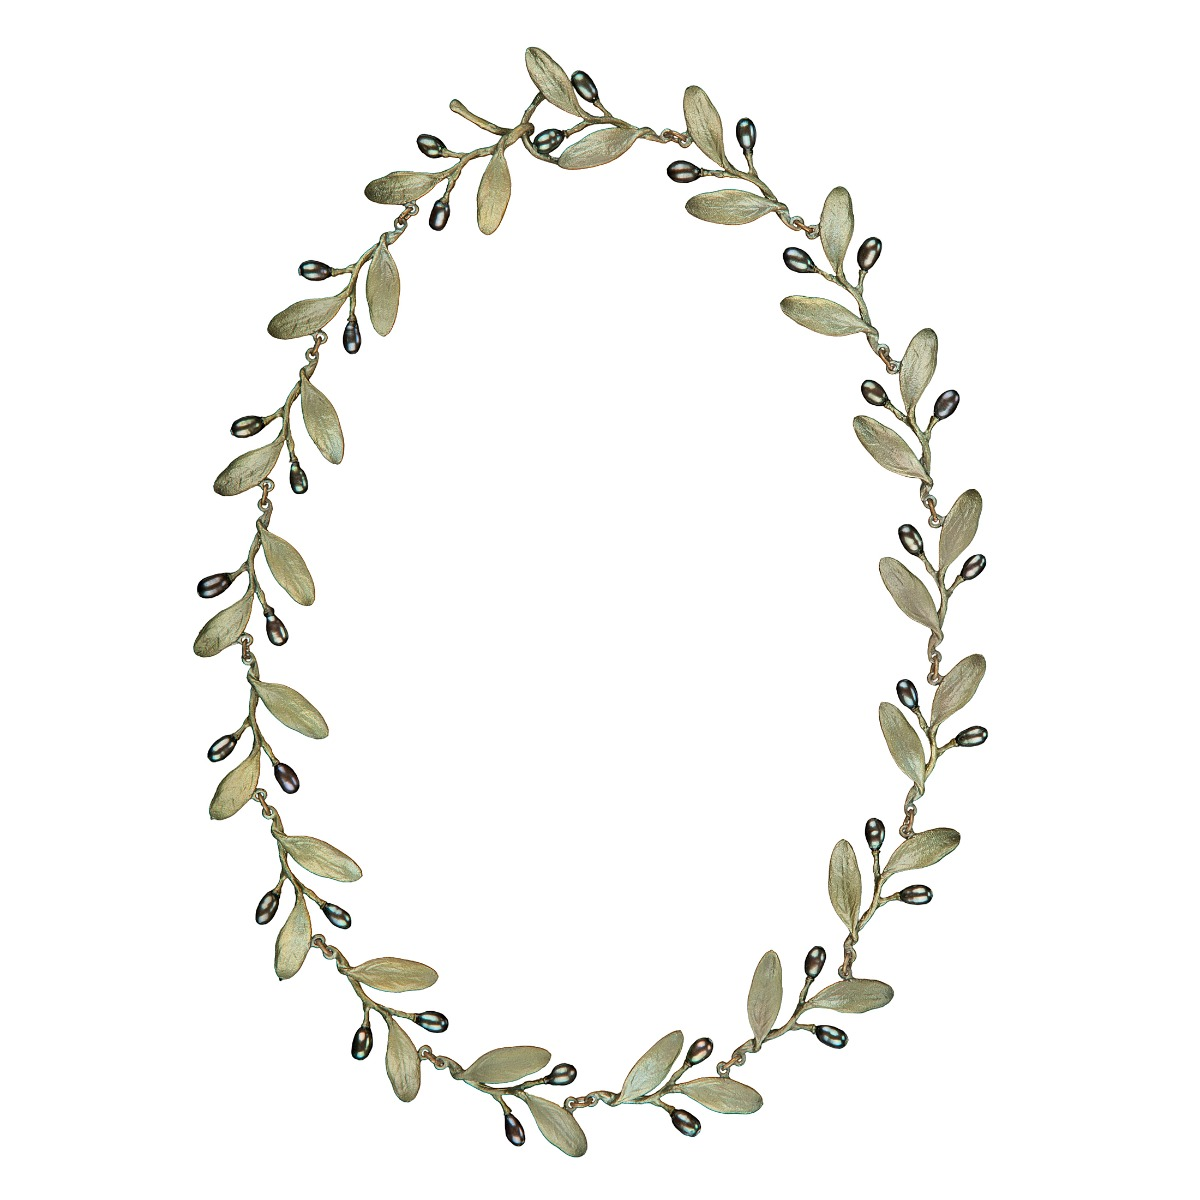 Olive pearl necklace